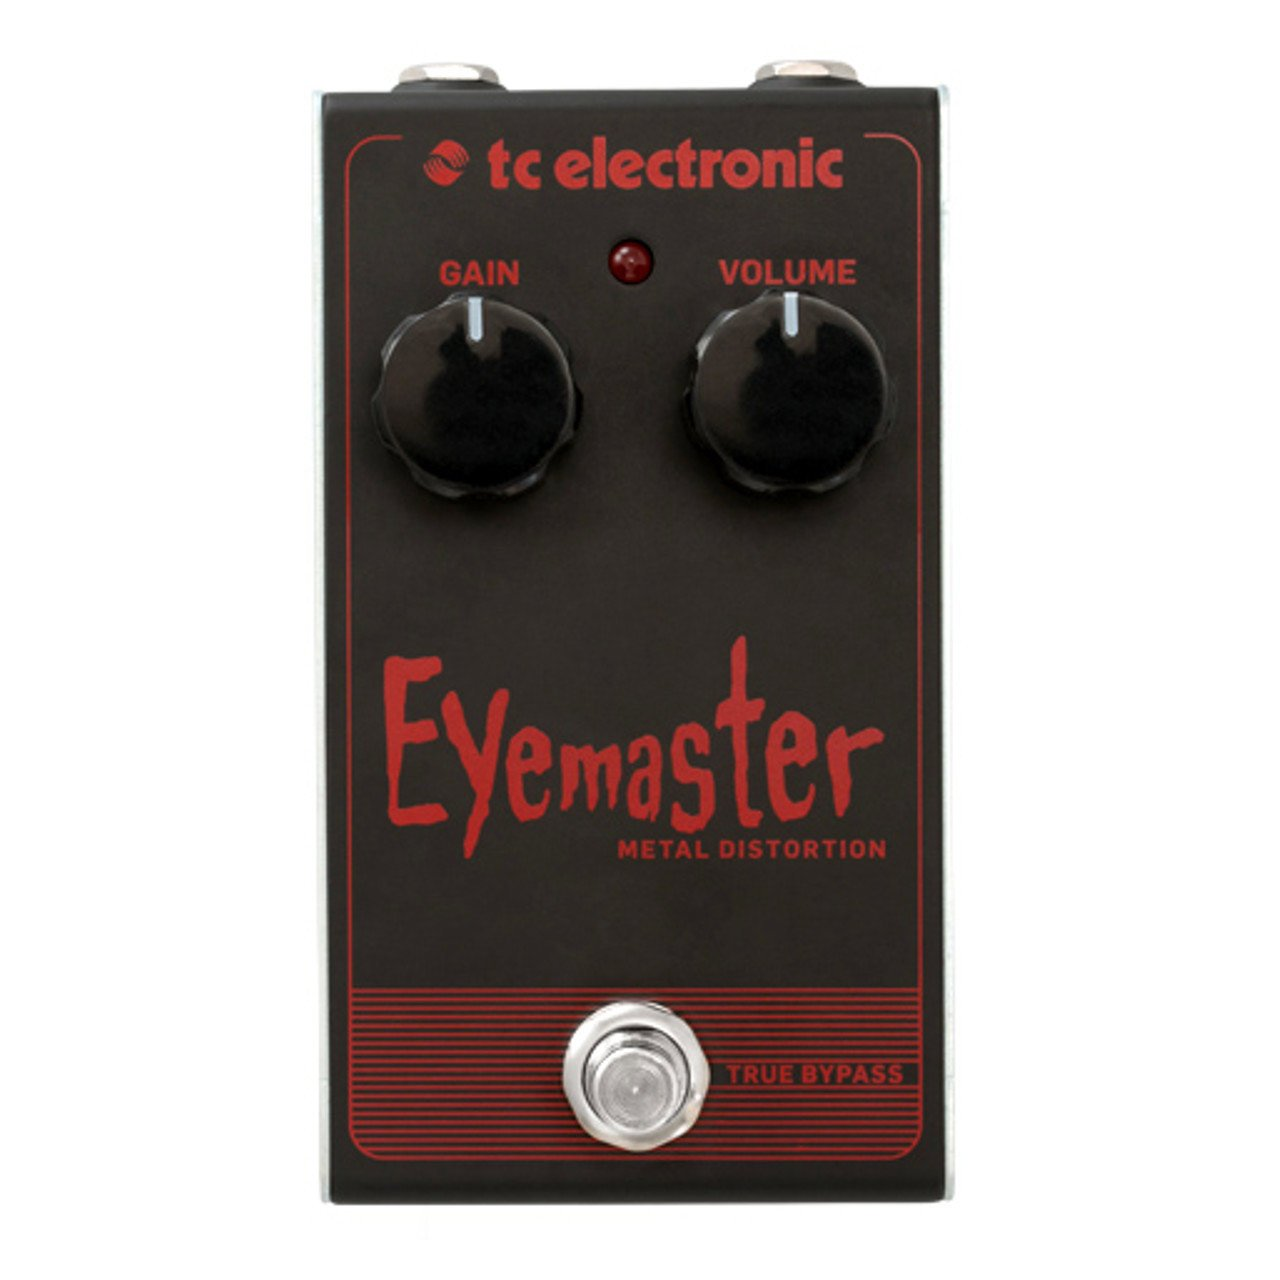 Pedals & Effects - TC Electronic Eyemaster Metal Distortion Pedal